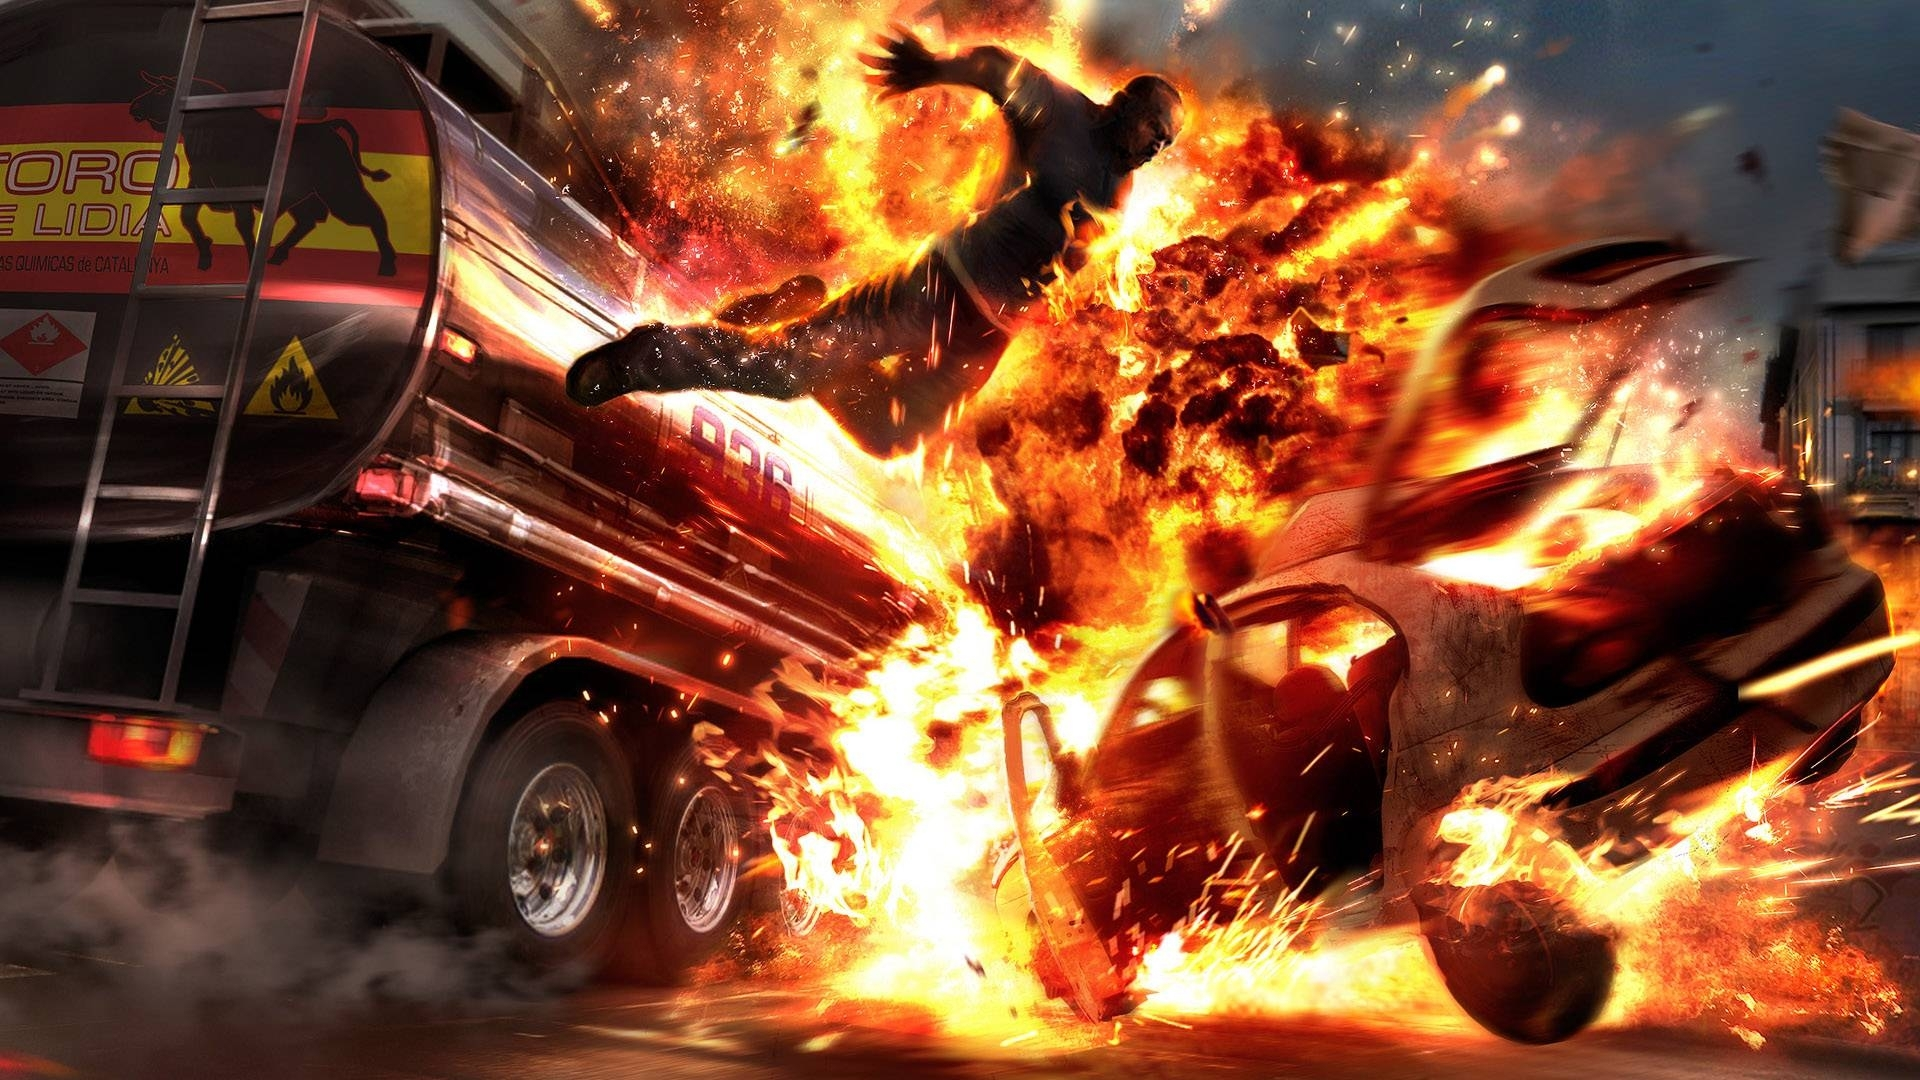 1122 download wallpaper Auto, Fantasy, Art, Fire, Explosions screensavers and pictures for free